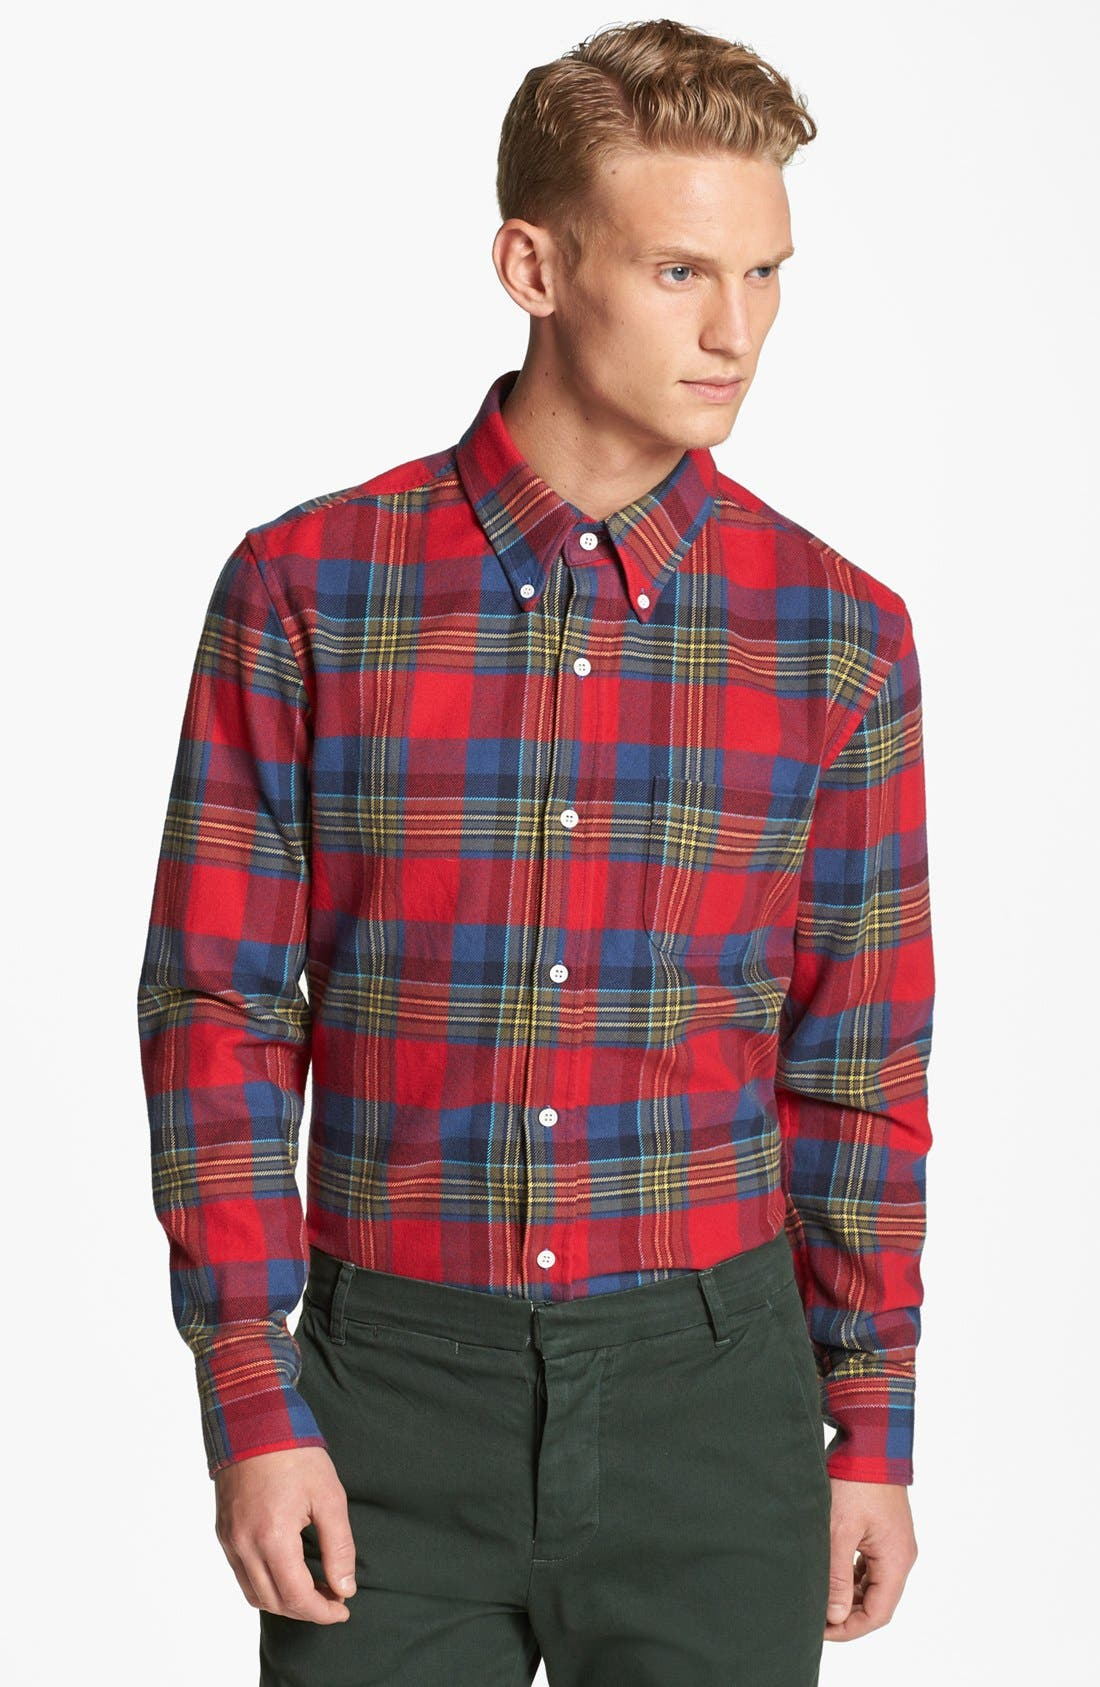 Alternate Image 1 Selected - Band of Outsiders Tartan Plaid Shirt